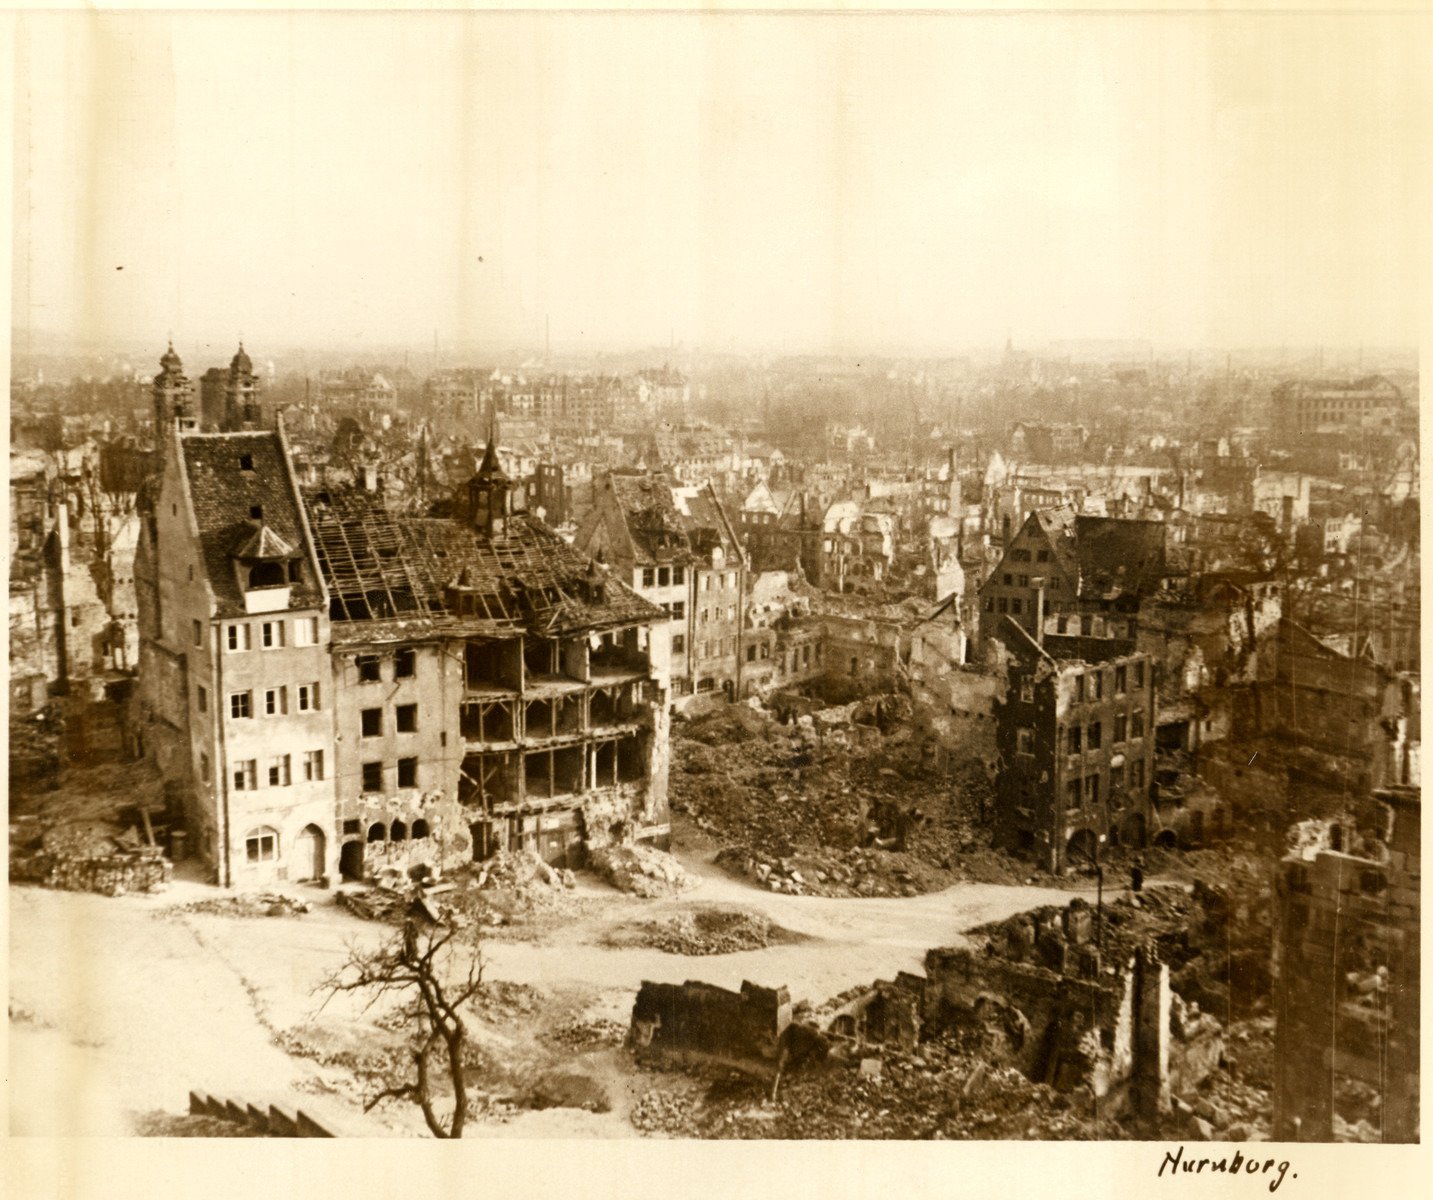 View of a bombed out street in Nuremberg.